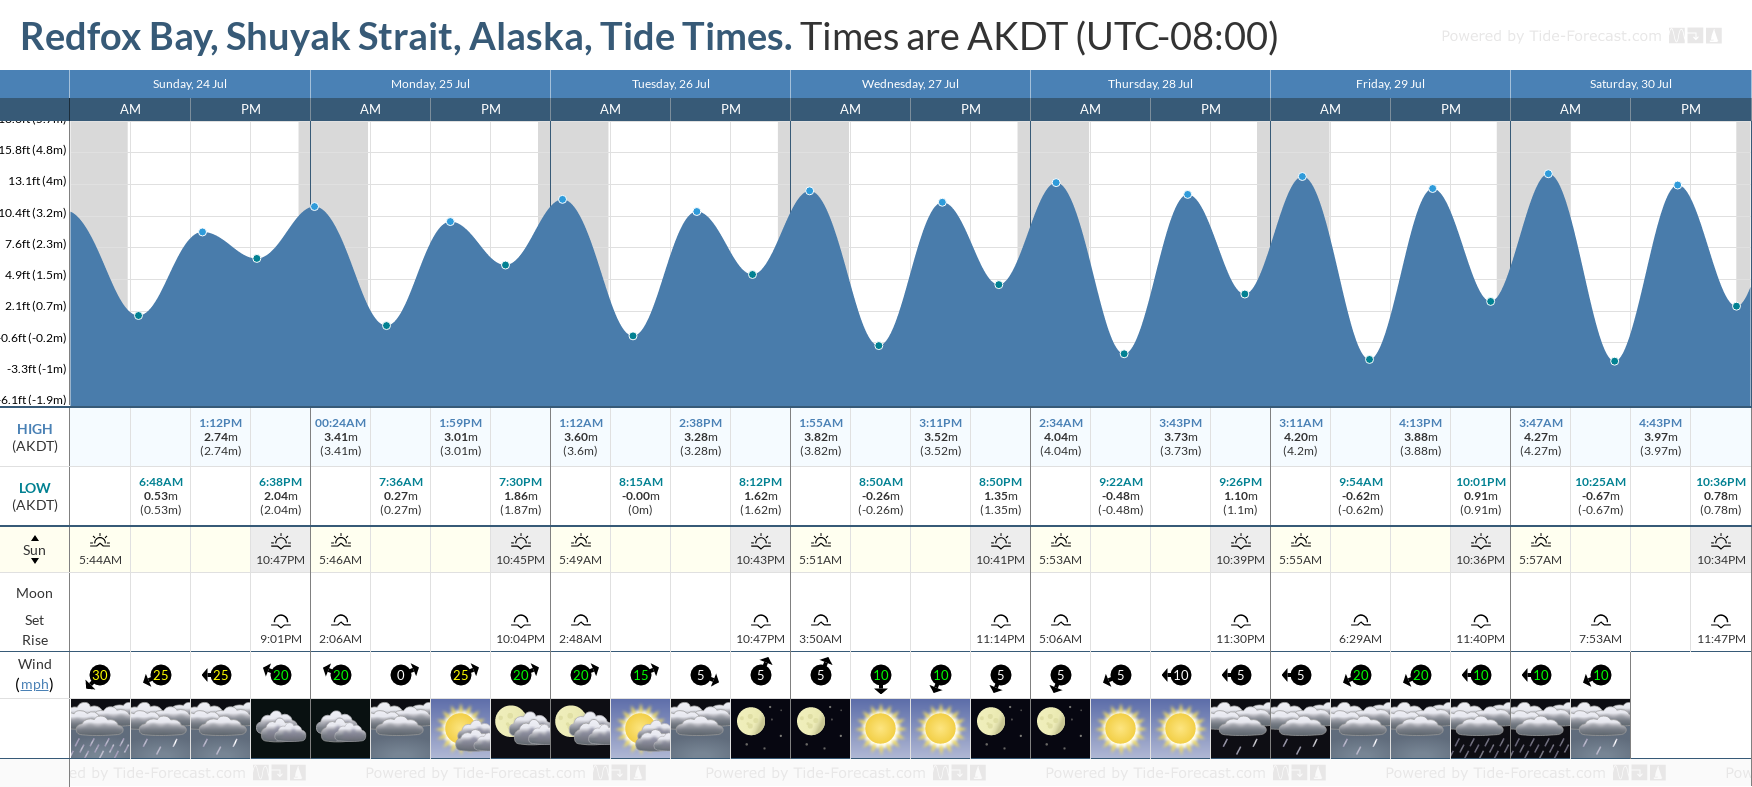 Redfox Bay, Shuyak Strait, Alaska Tide Chart including high and low tide tide times for the next 7 days